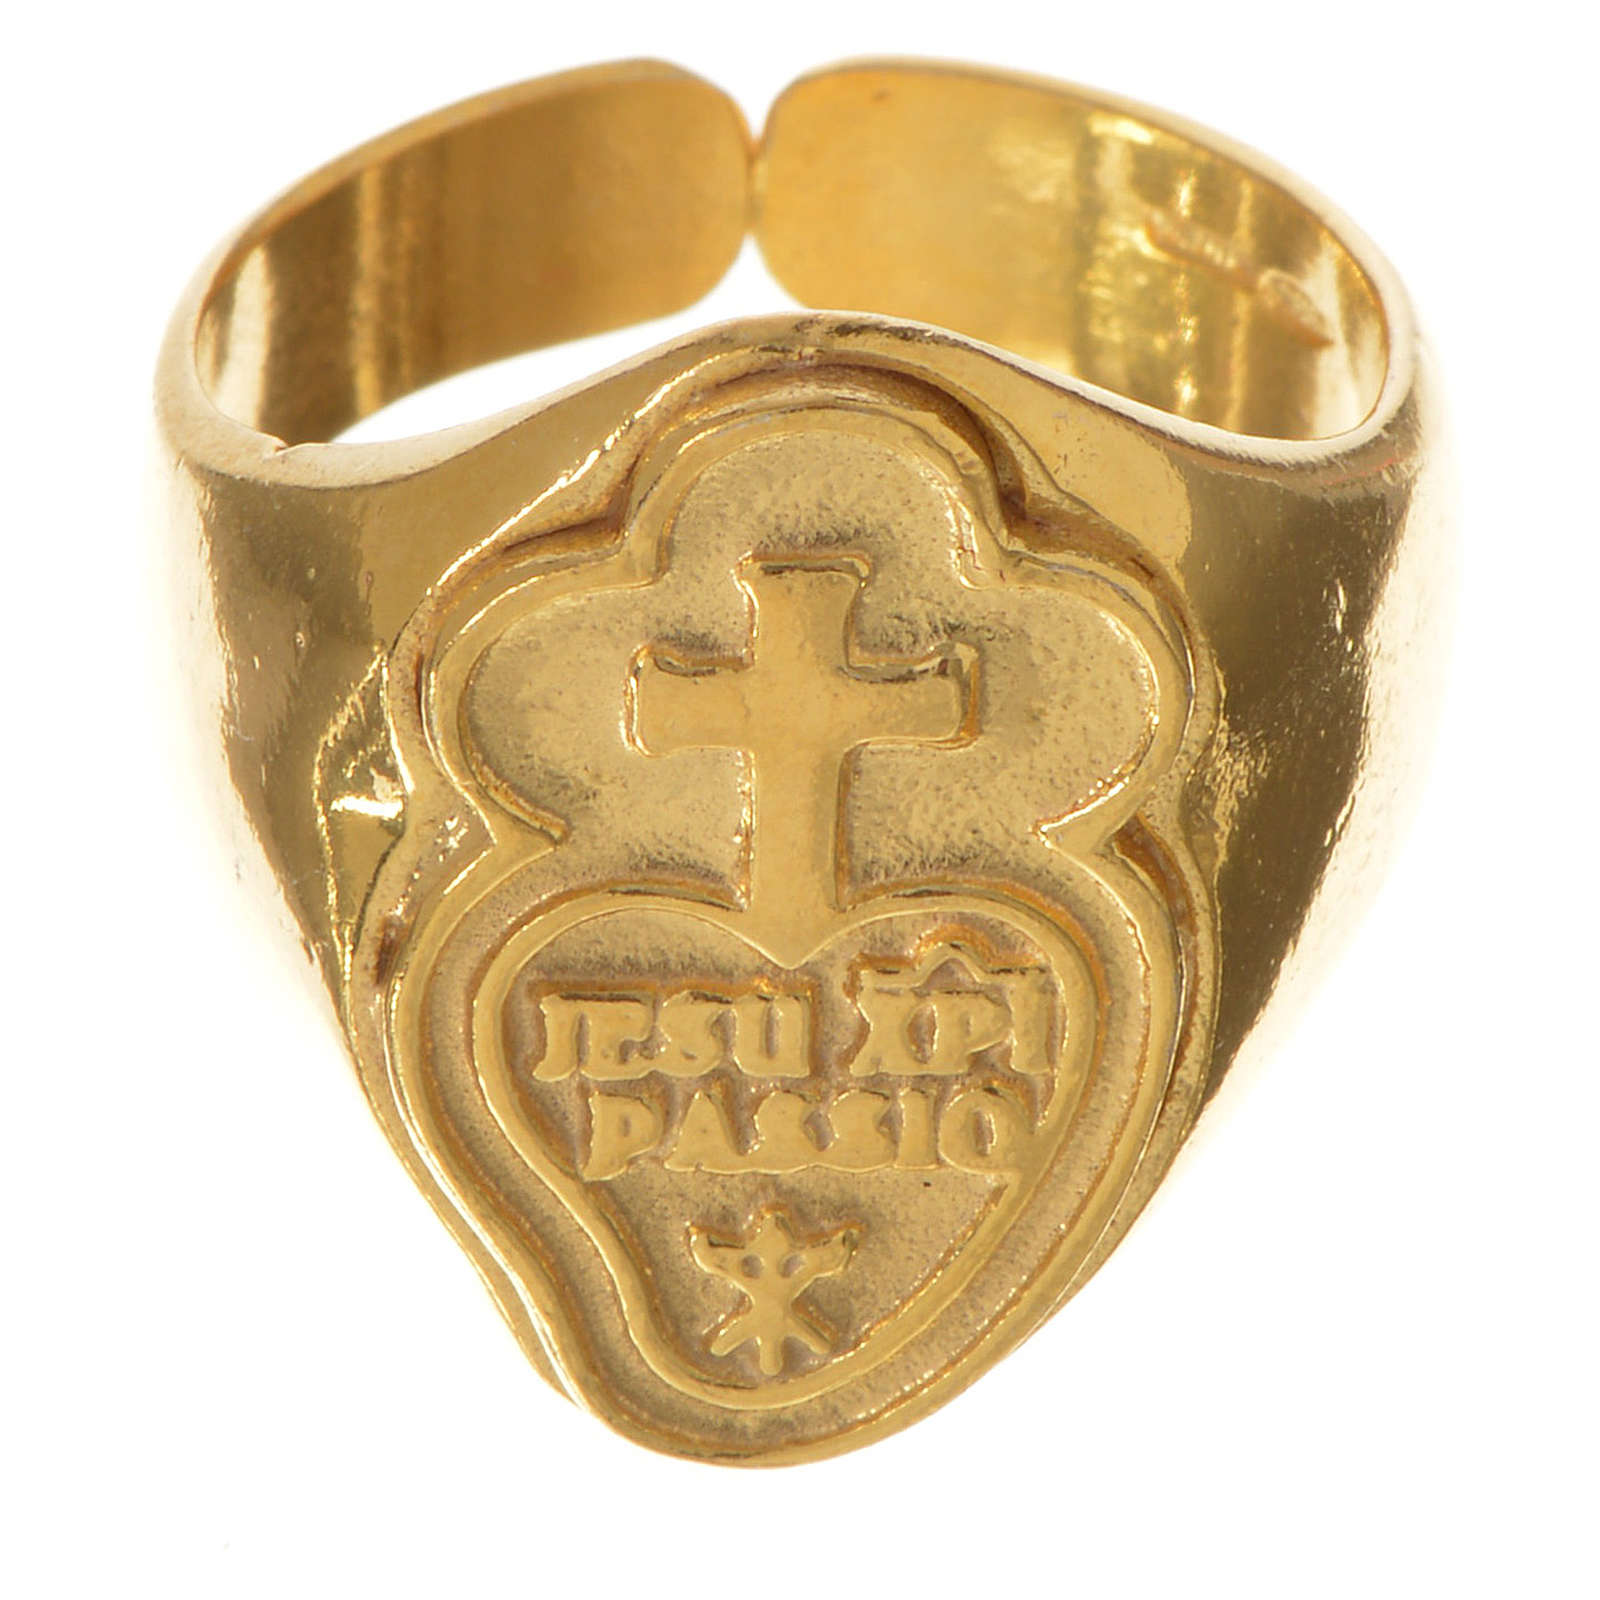 Bishop ring gold-plated sterling silver, Passionists 3